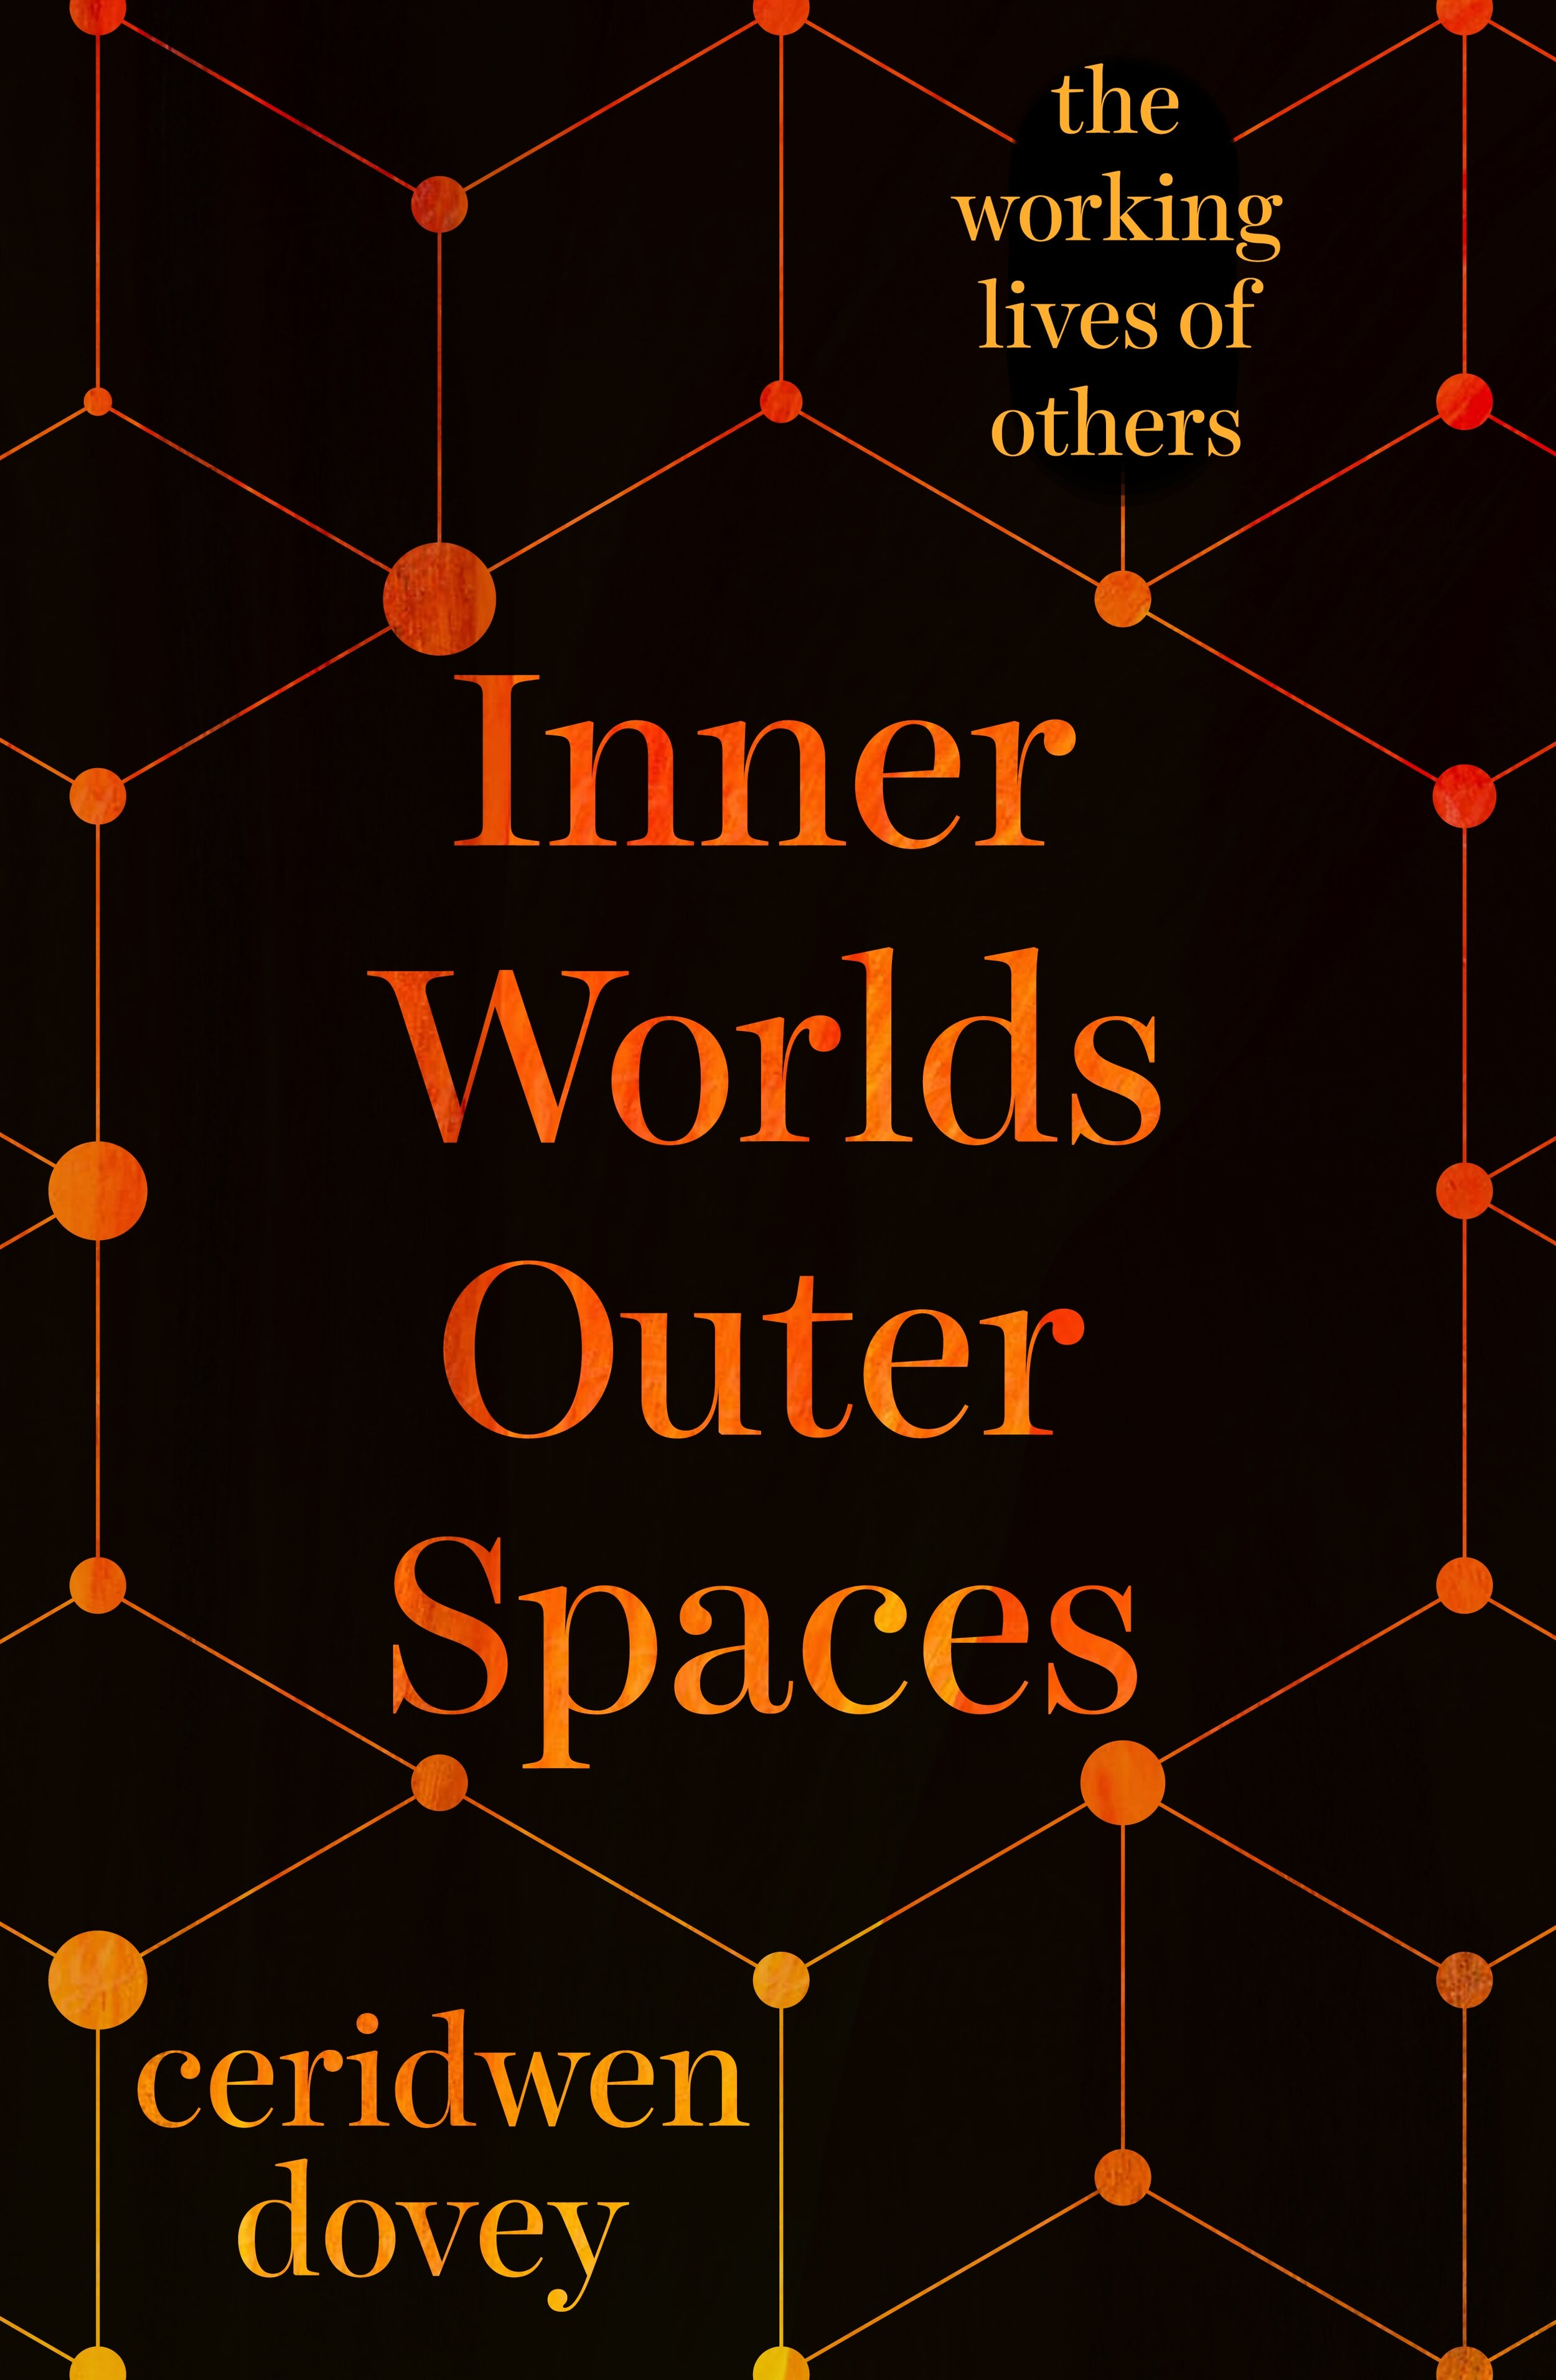 inner worlds outer spaces dovey.jpg